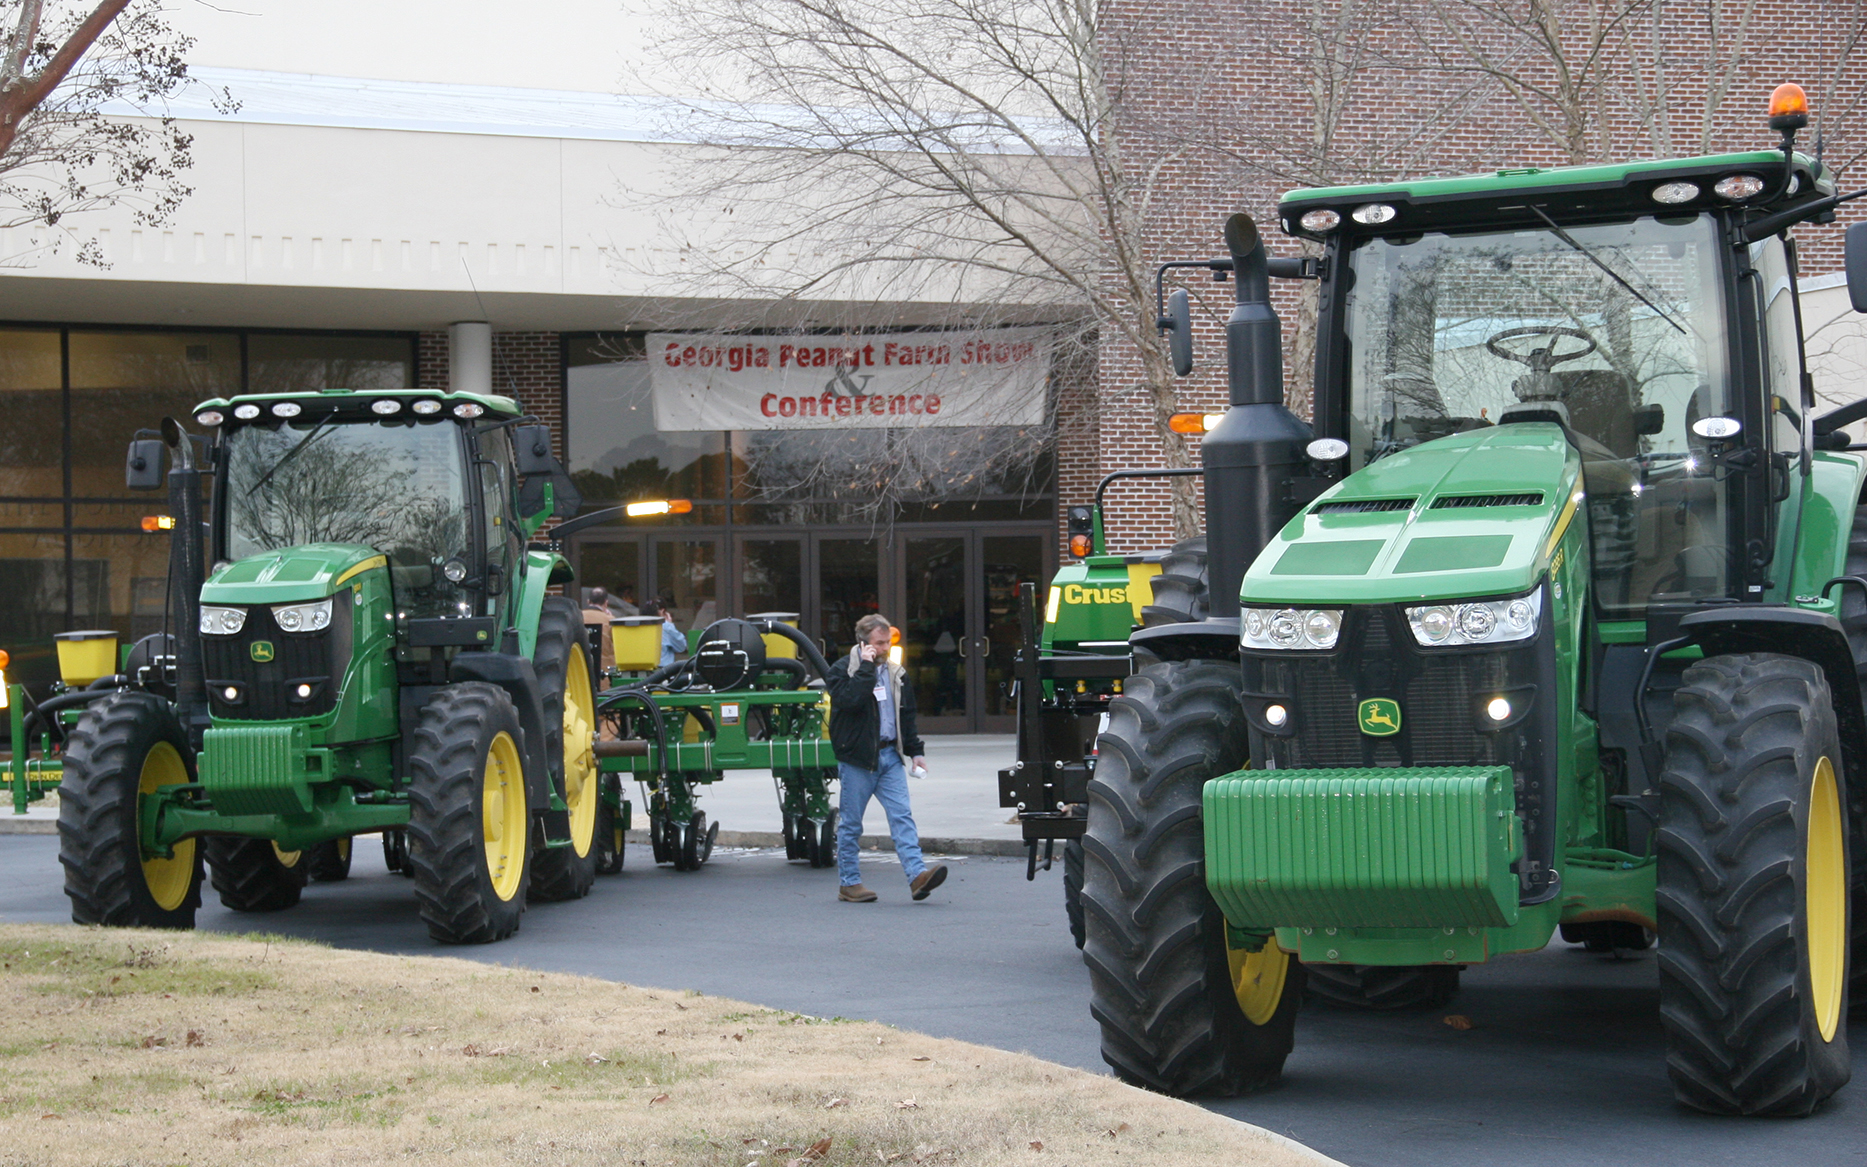 The 42nd annual Georgia Peanut Farm Show and Conference will be held at the UGA Tifton Campus Conference Center in Tifton, Georgia.